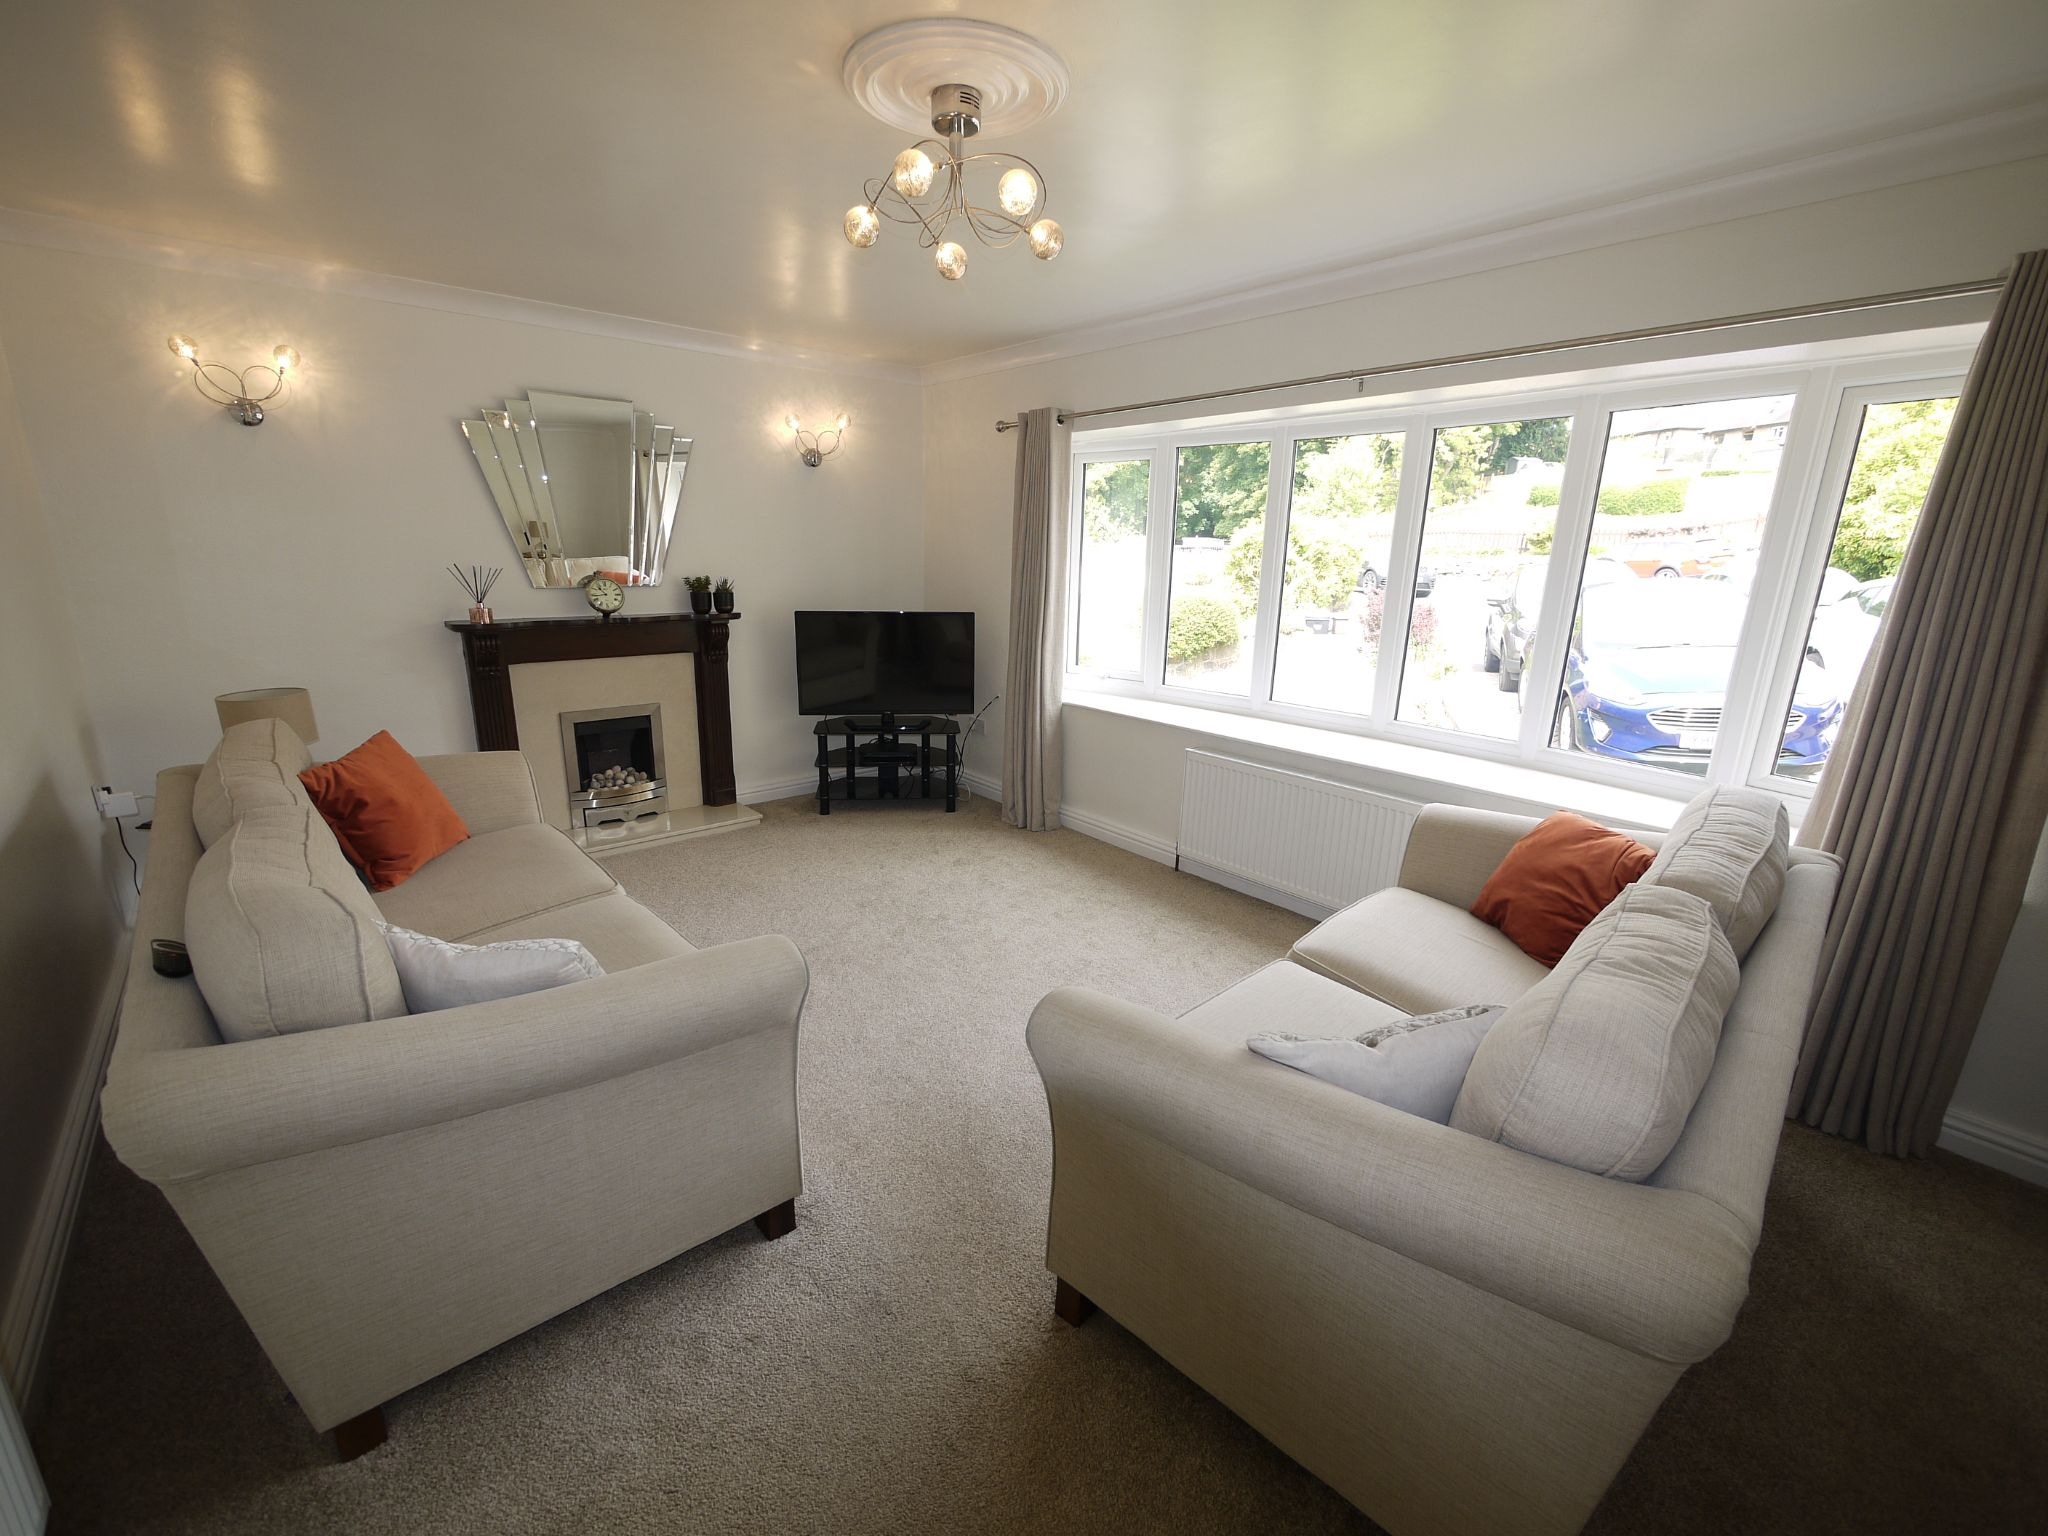 4 bedroom semi-detached house For Sale in Brighouse - Lounge.